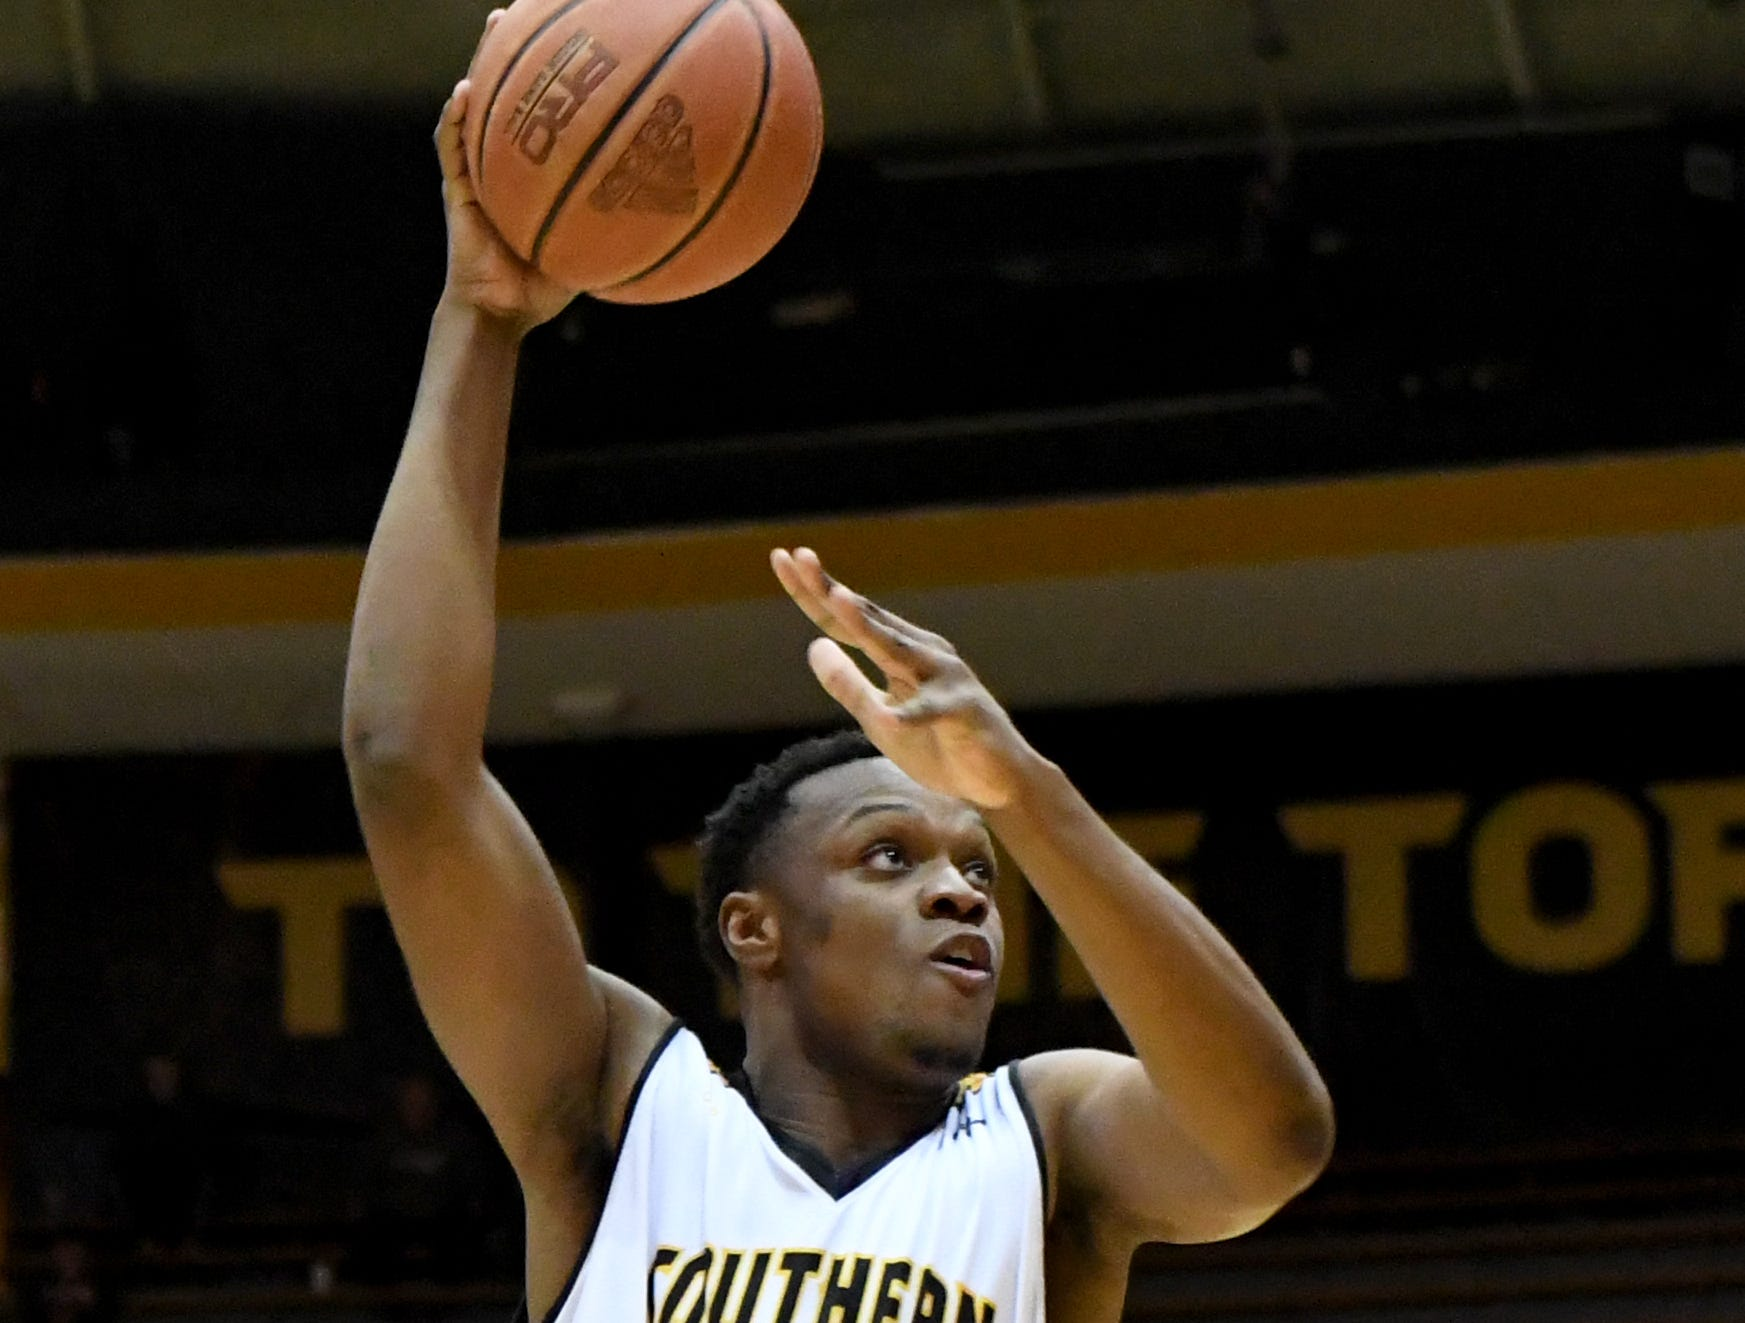 Southern Miss forward Boban Jacdonmi shoot for the basket in a game against South Alabama in Reed Green Coliseum on Wednesday, November 28, 2018.